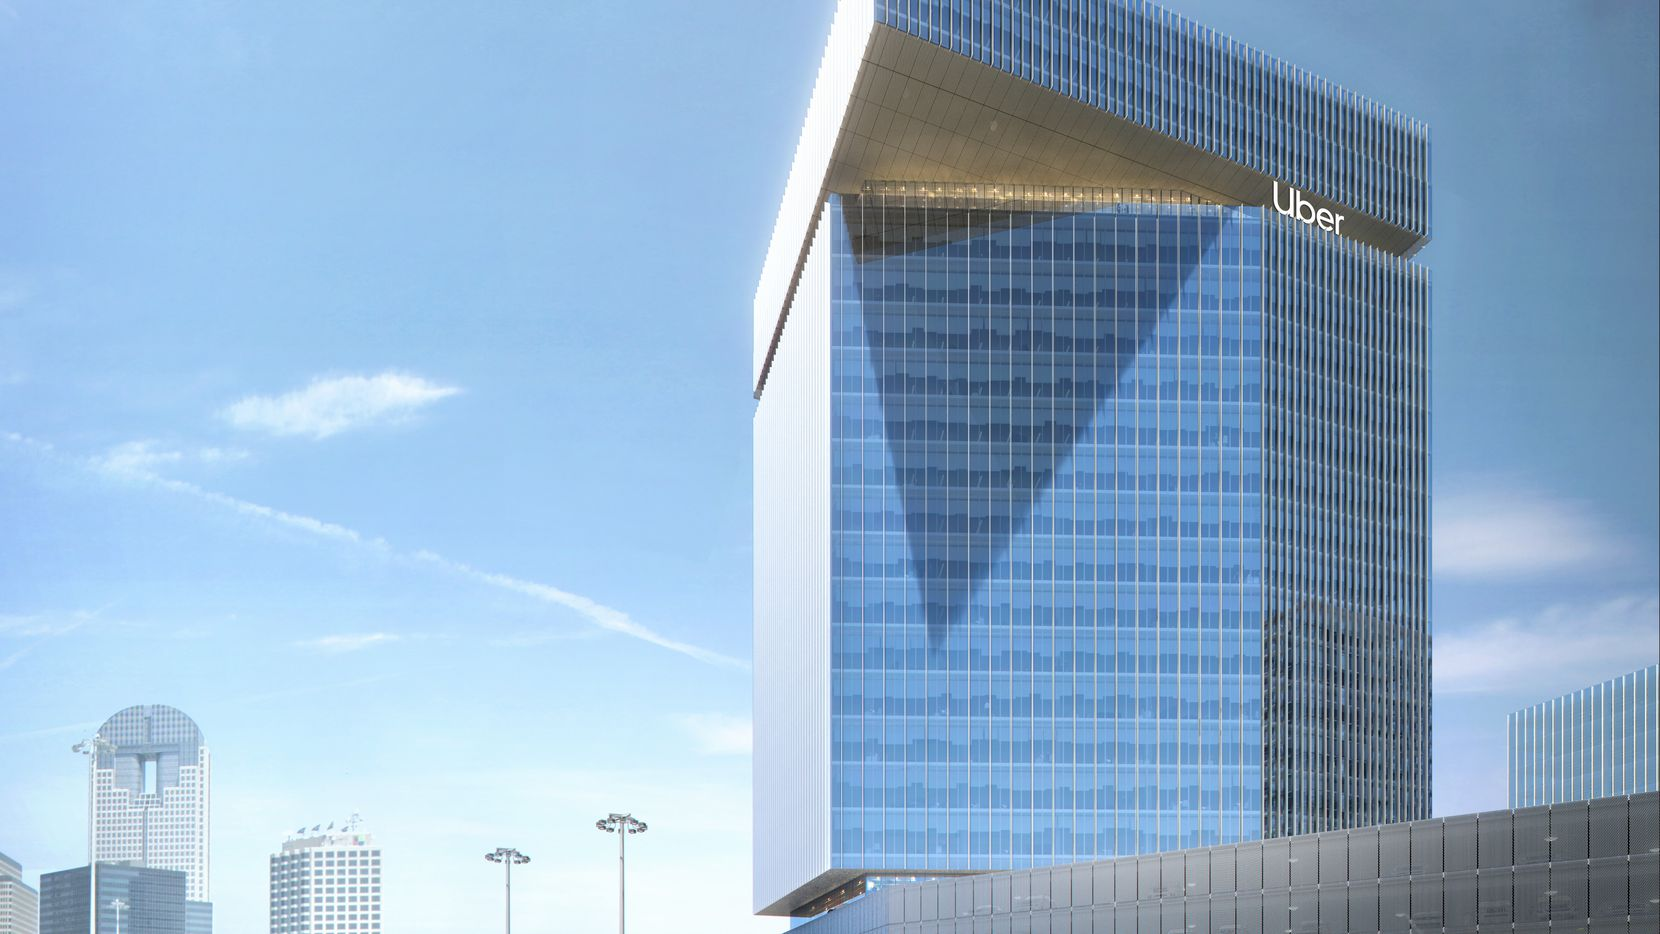 A rendering of the proposed 23-floor tower that Uber plans to move into in 2022.